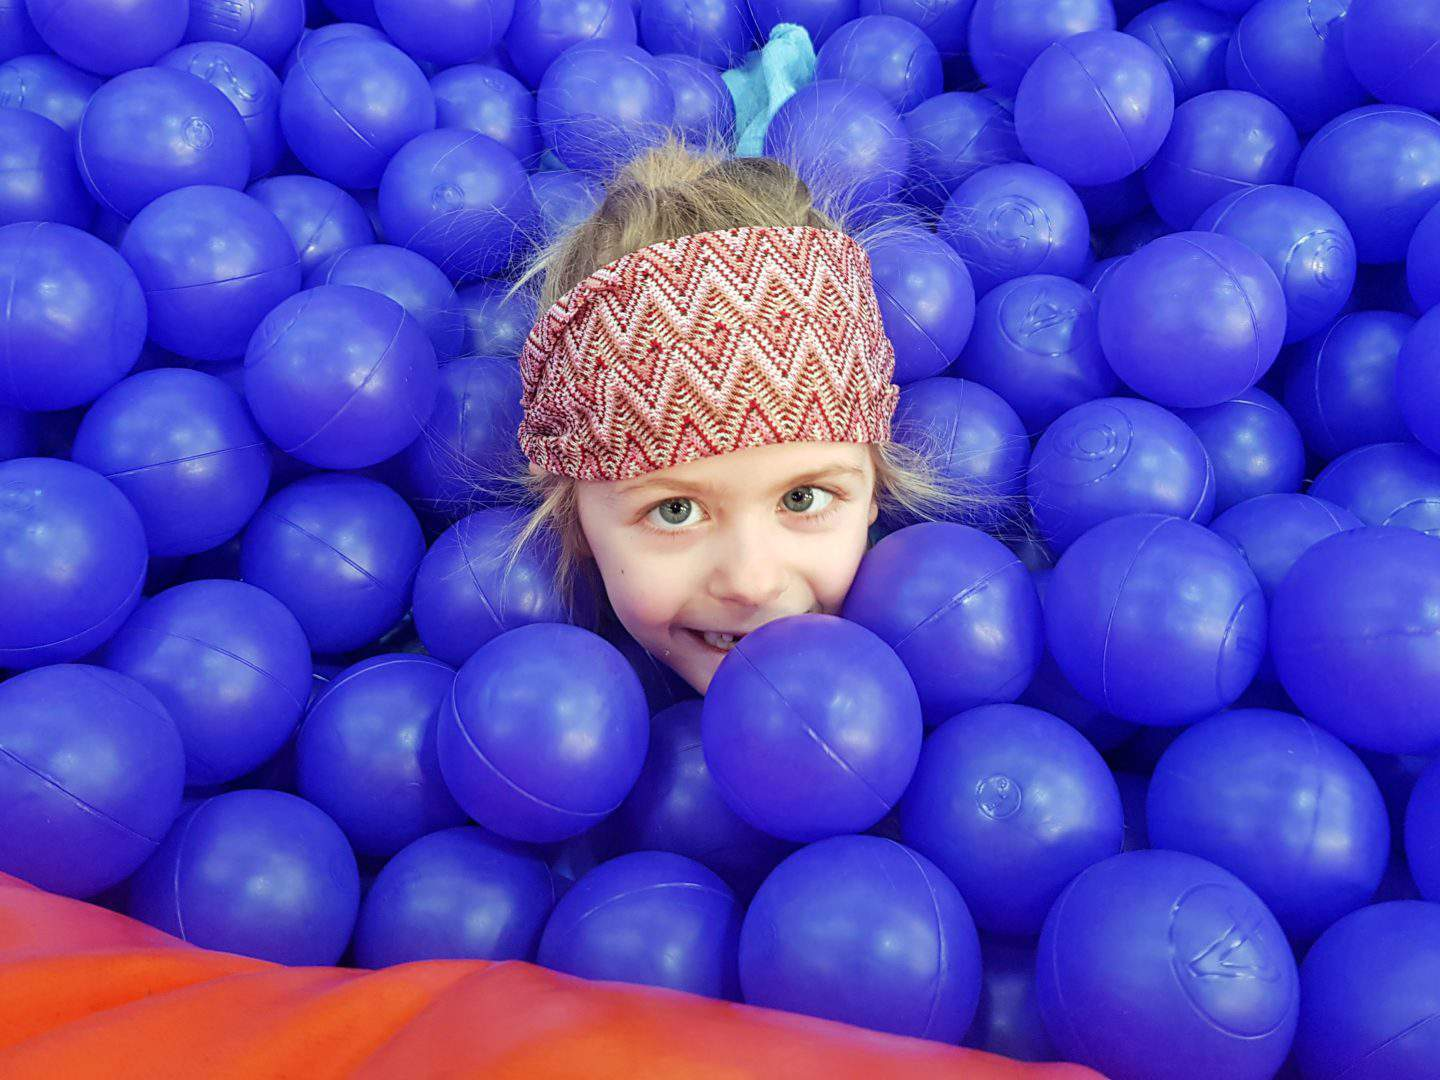 Inflata Nation Birmingham girl's head in ball pit